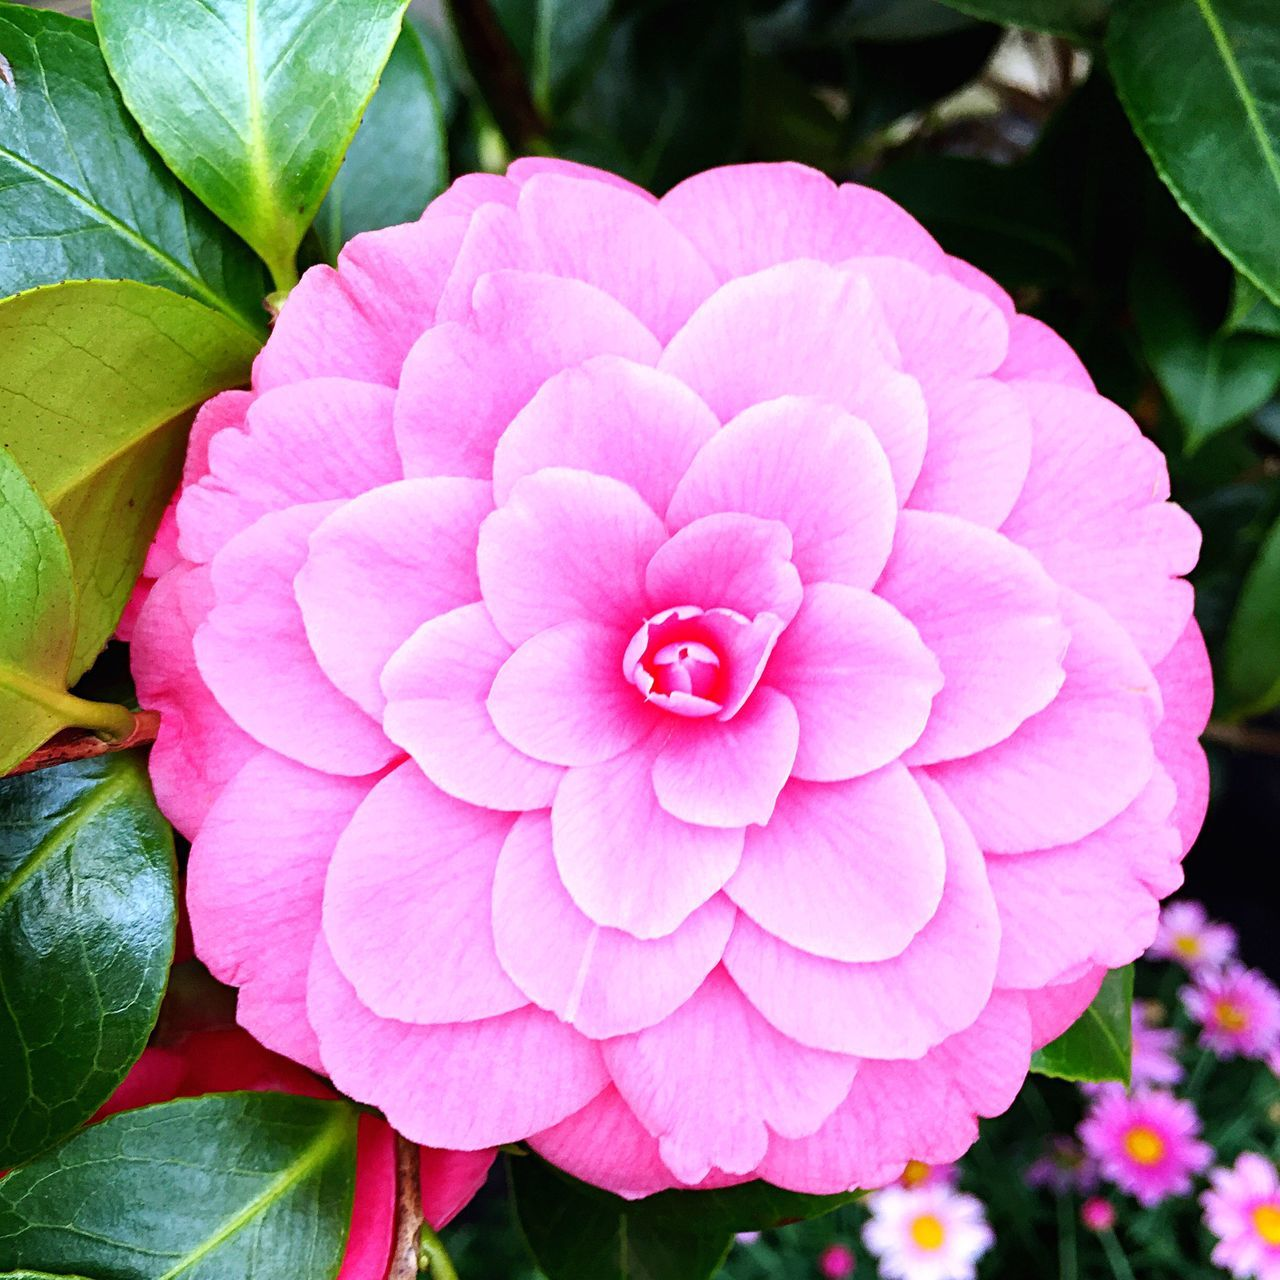 Camelia Flower Petal Beauty In Nature Nature Blooming Fragility Plant Camellia Flower Head Freshness Pink Color Outdoors Close-up No People Day